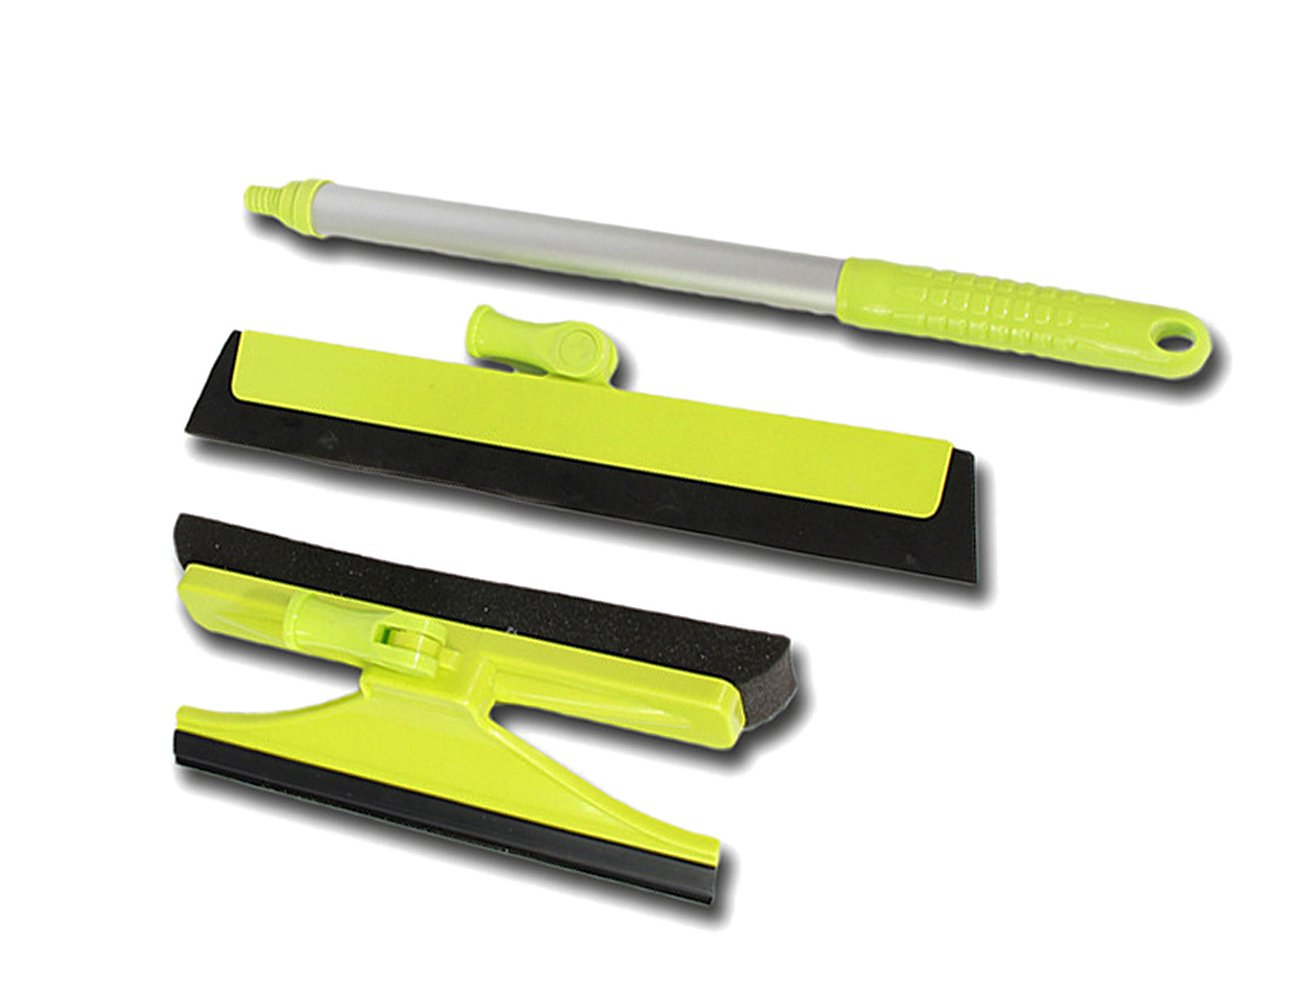 SEVICAT Retractable Glass Cleaning Squeegee Extendable Handle Window Cleaner with Full-Sterring Head and Double-side Brushes for All Kinds of Glass Marble Wood